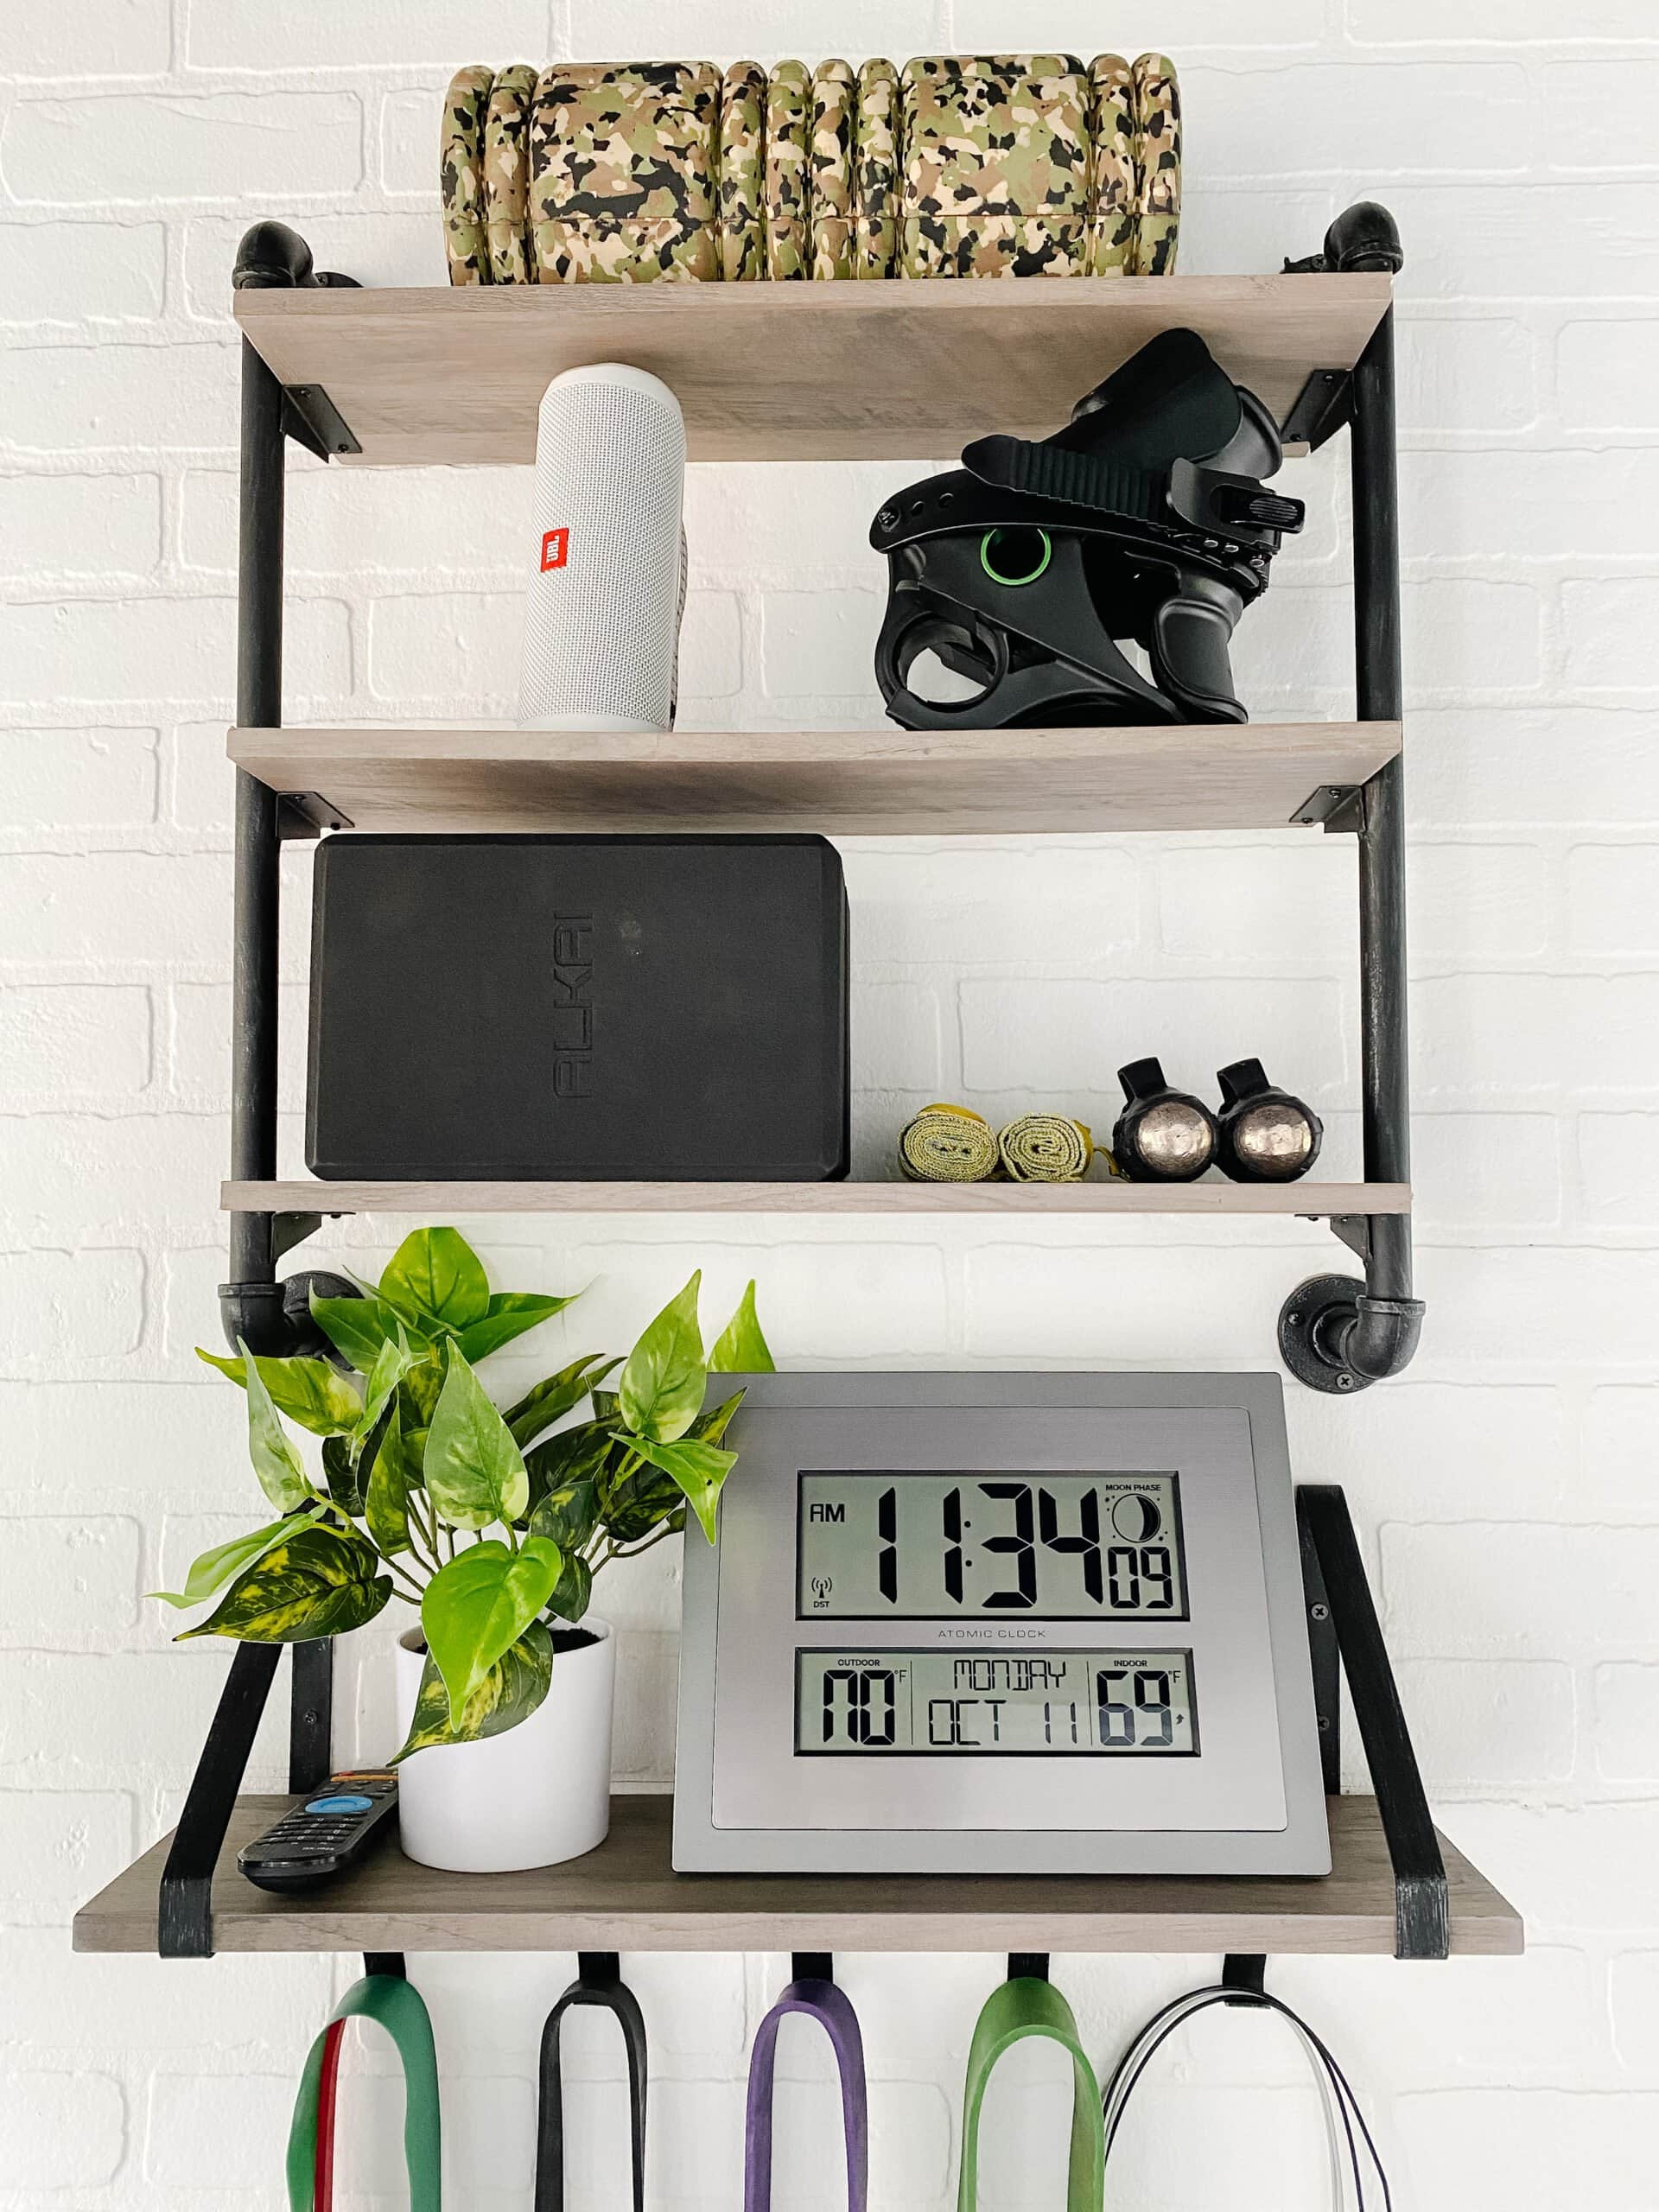 wall shelves for storing small gym equipment